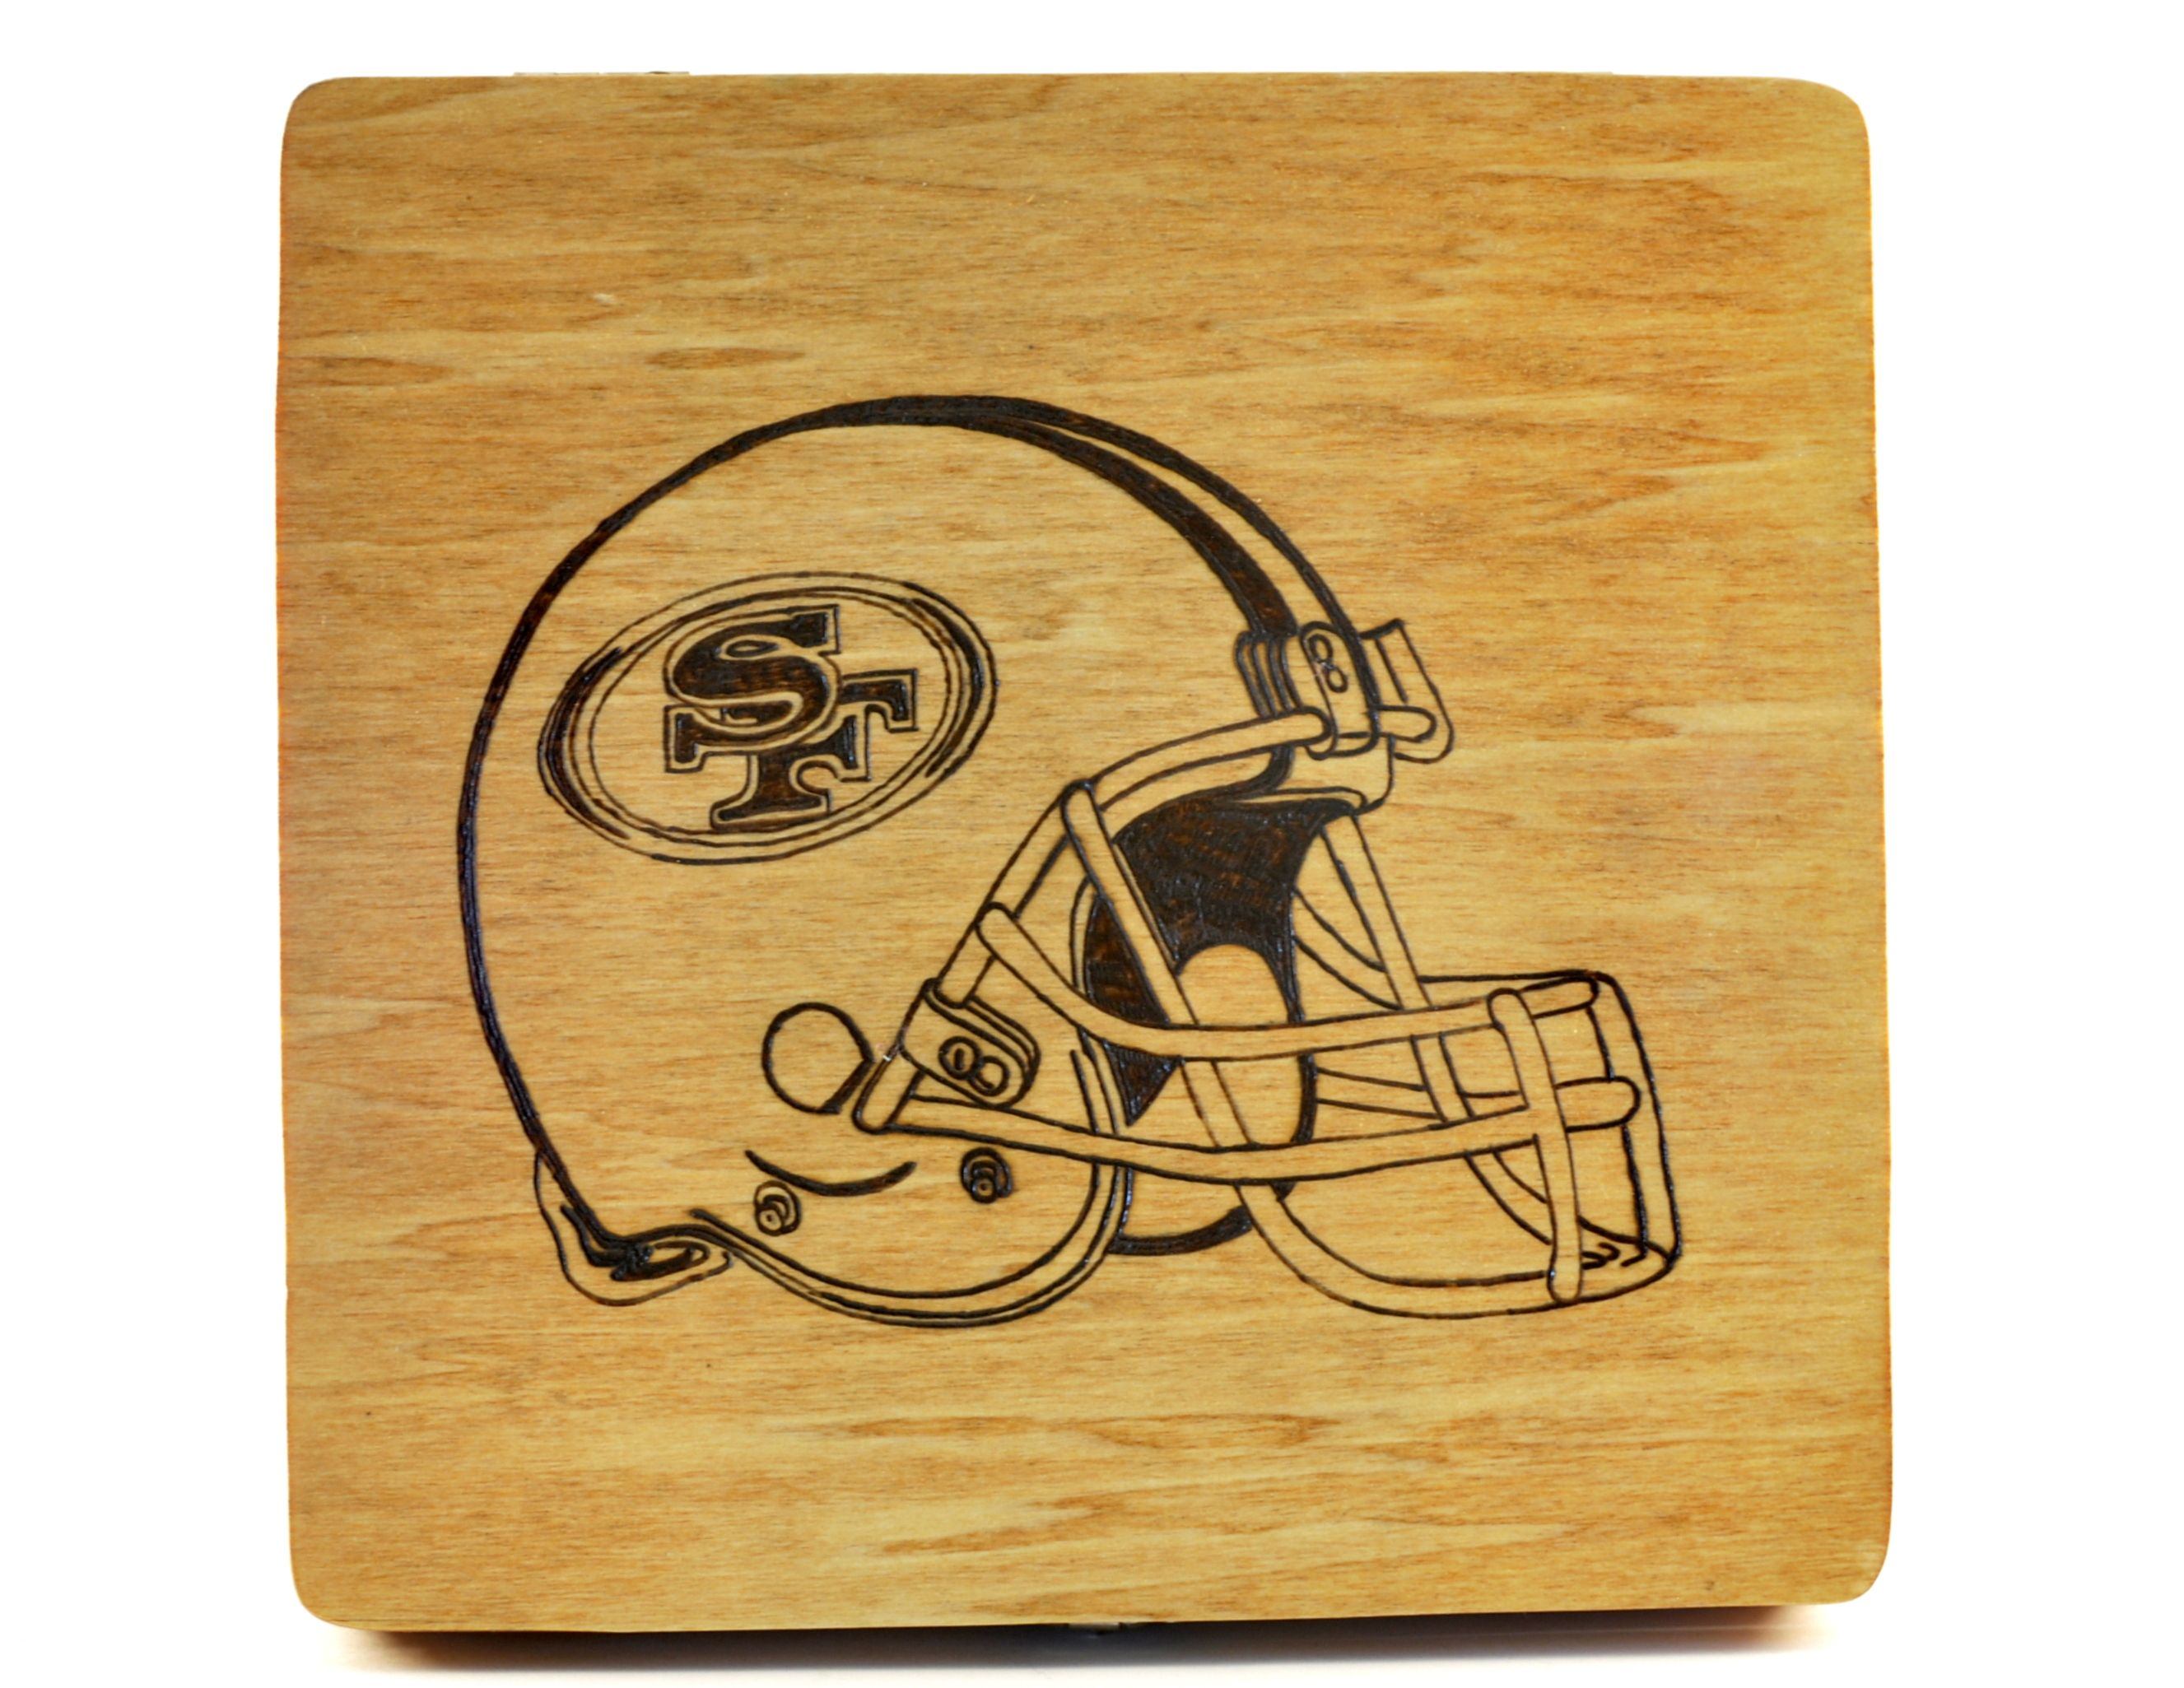 San Francisco 49ers wood burned box I can add your favorite sports ...